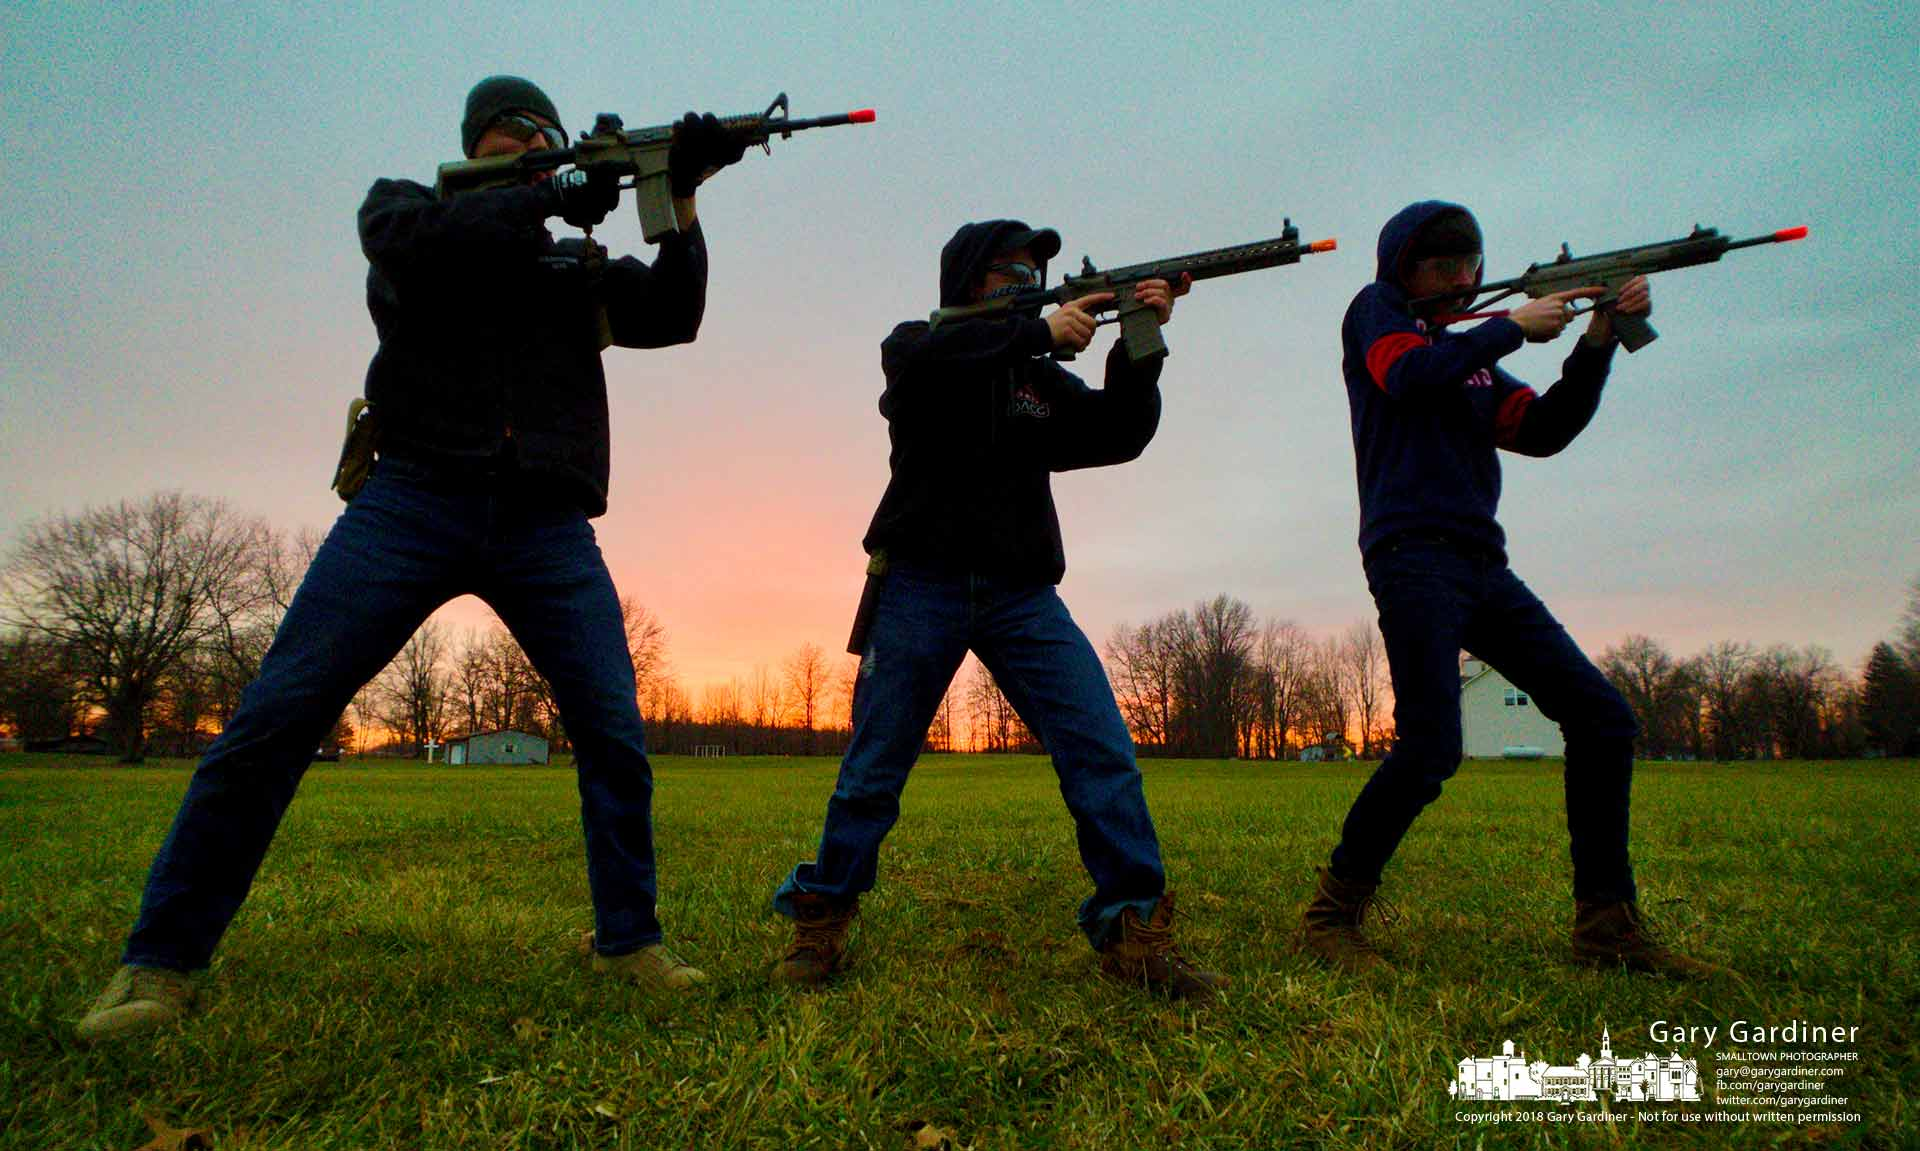 The three grandsons pose with their Airsoft rifles as the Christmas day sun sets after the trio consumed a large portion of food and elected to burn it off in the backyard. My Final Photo for Dec. 25, 2018.